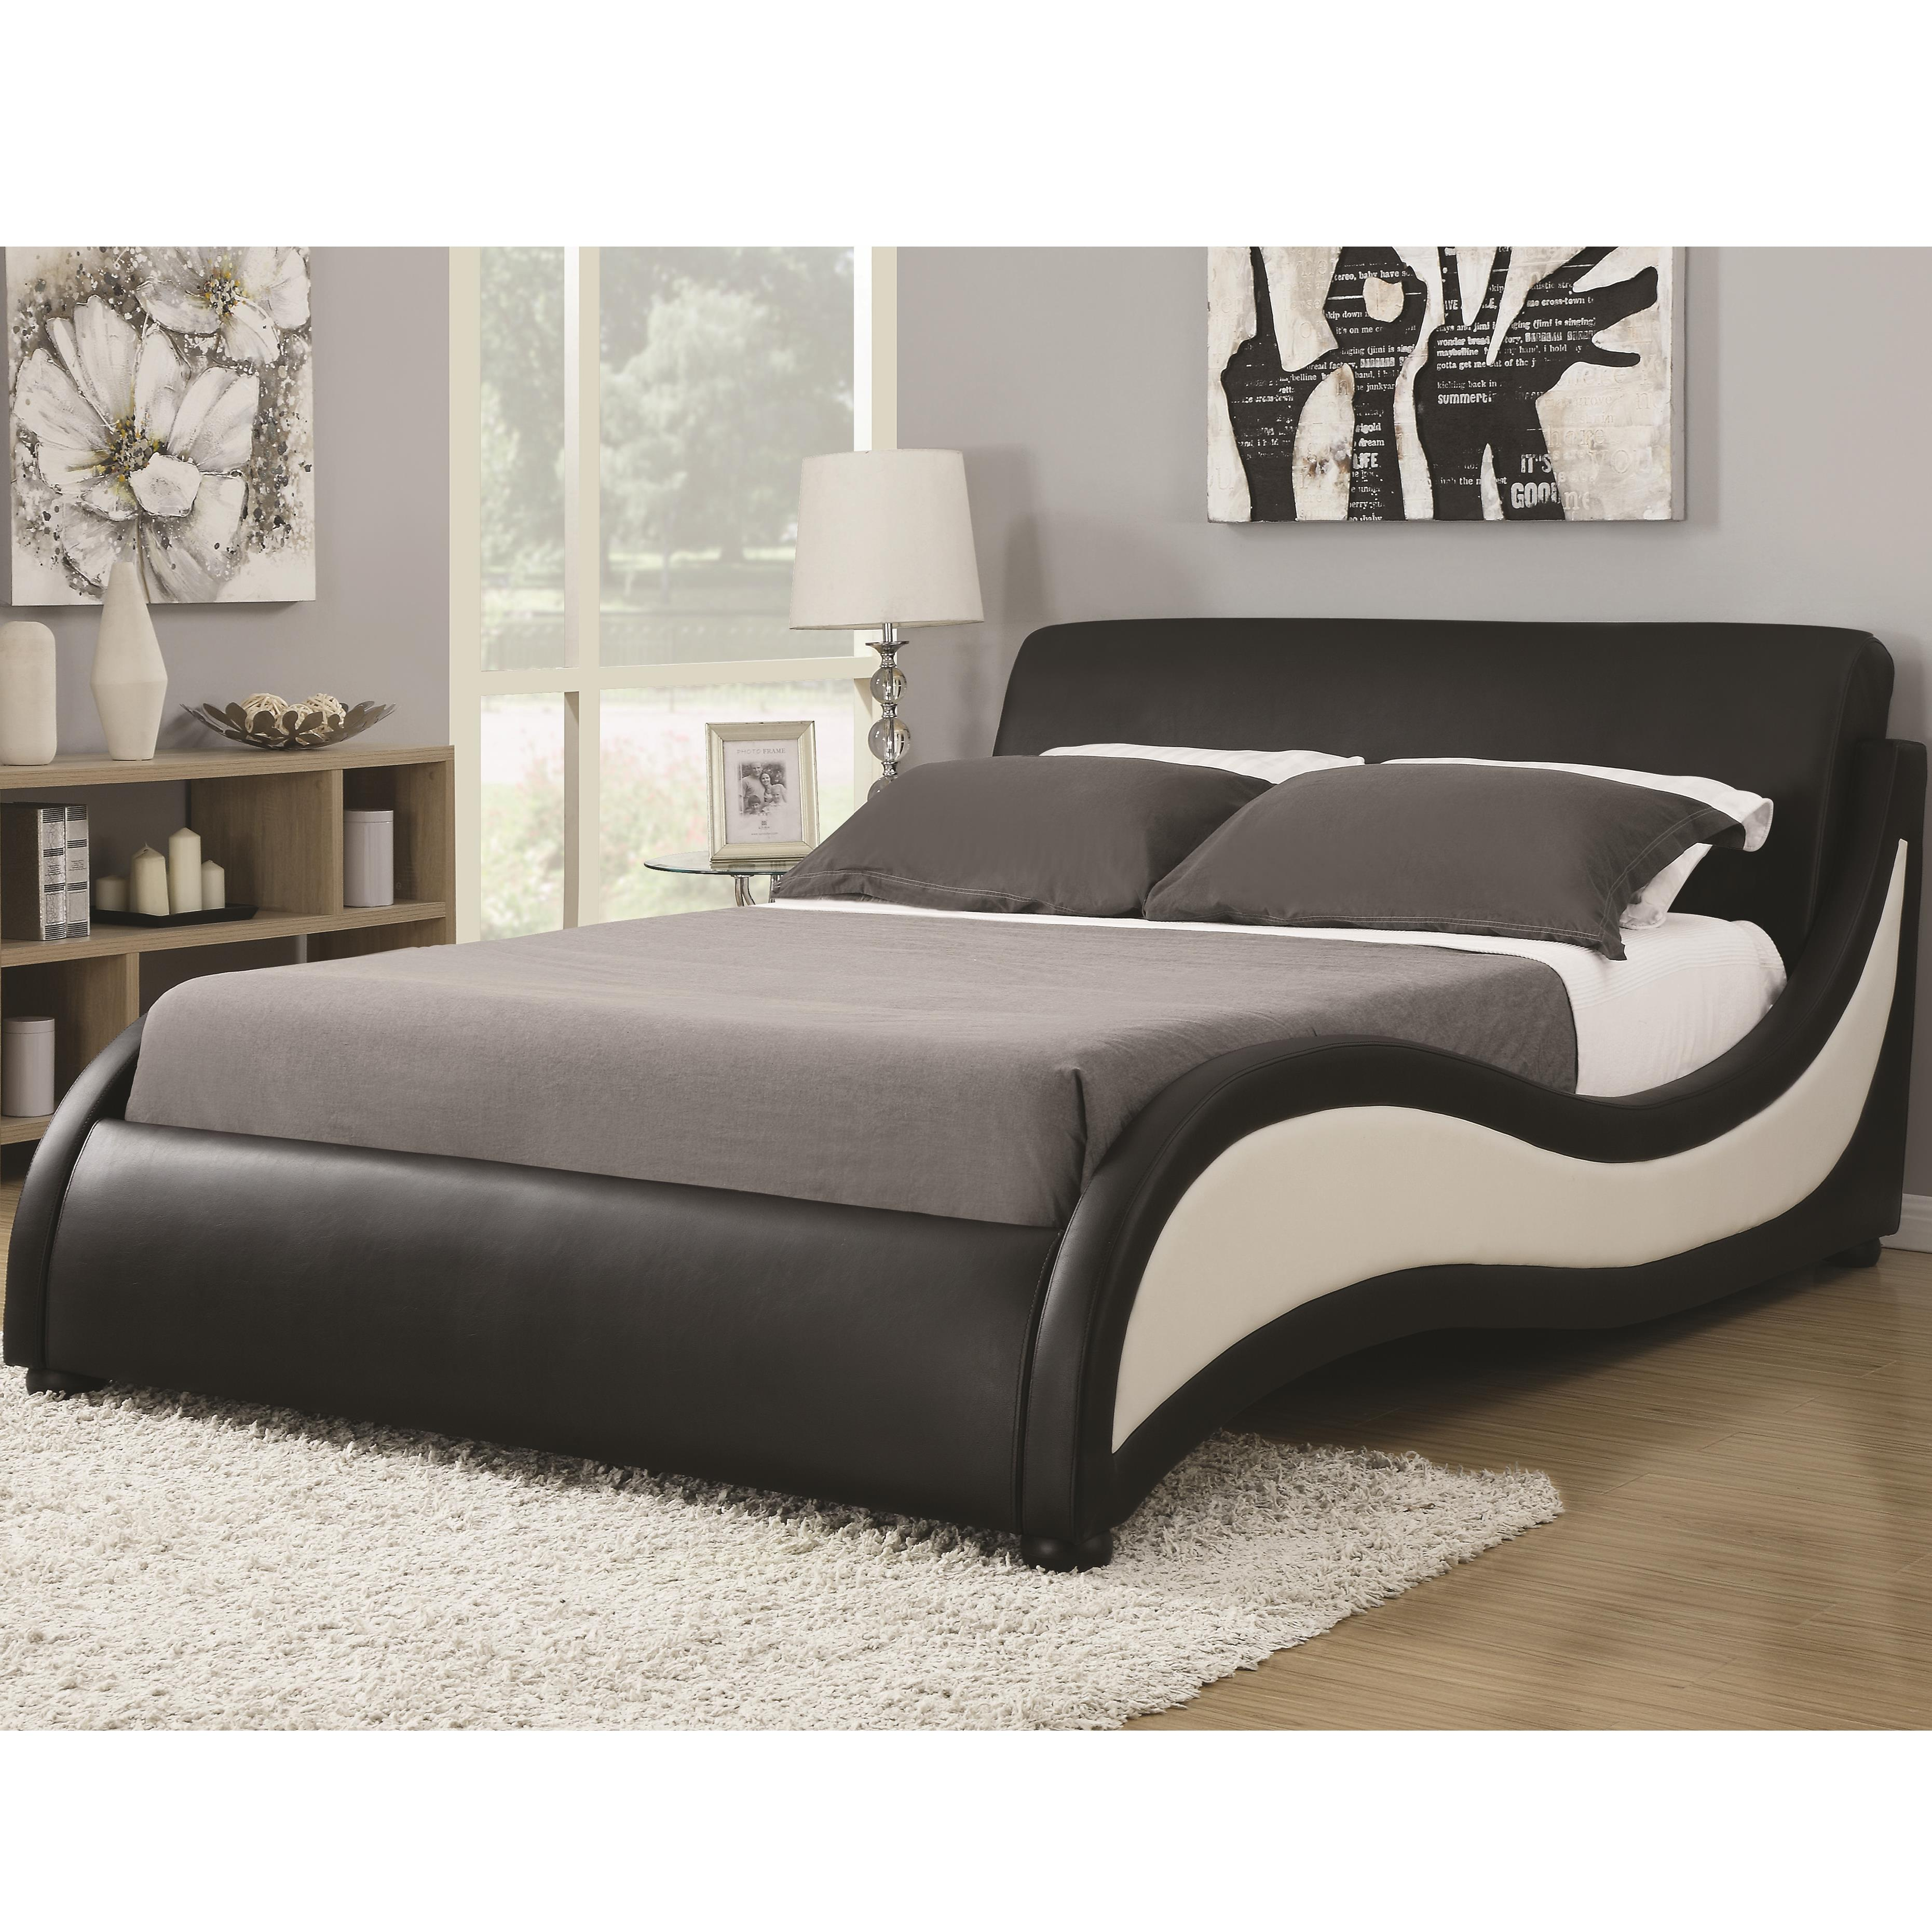 Coaster upholstered beds 300170q queen niguel bed for Upholstered queen bed frame